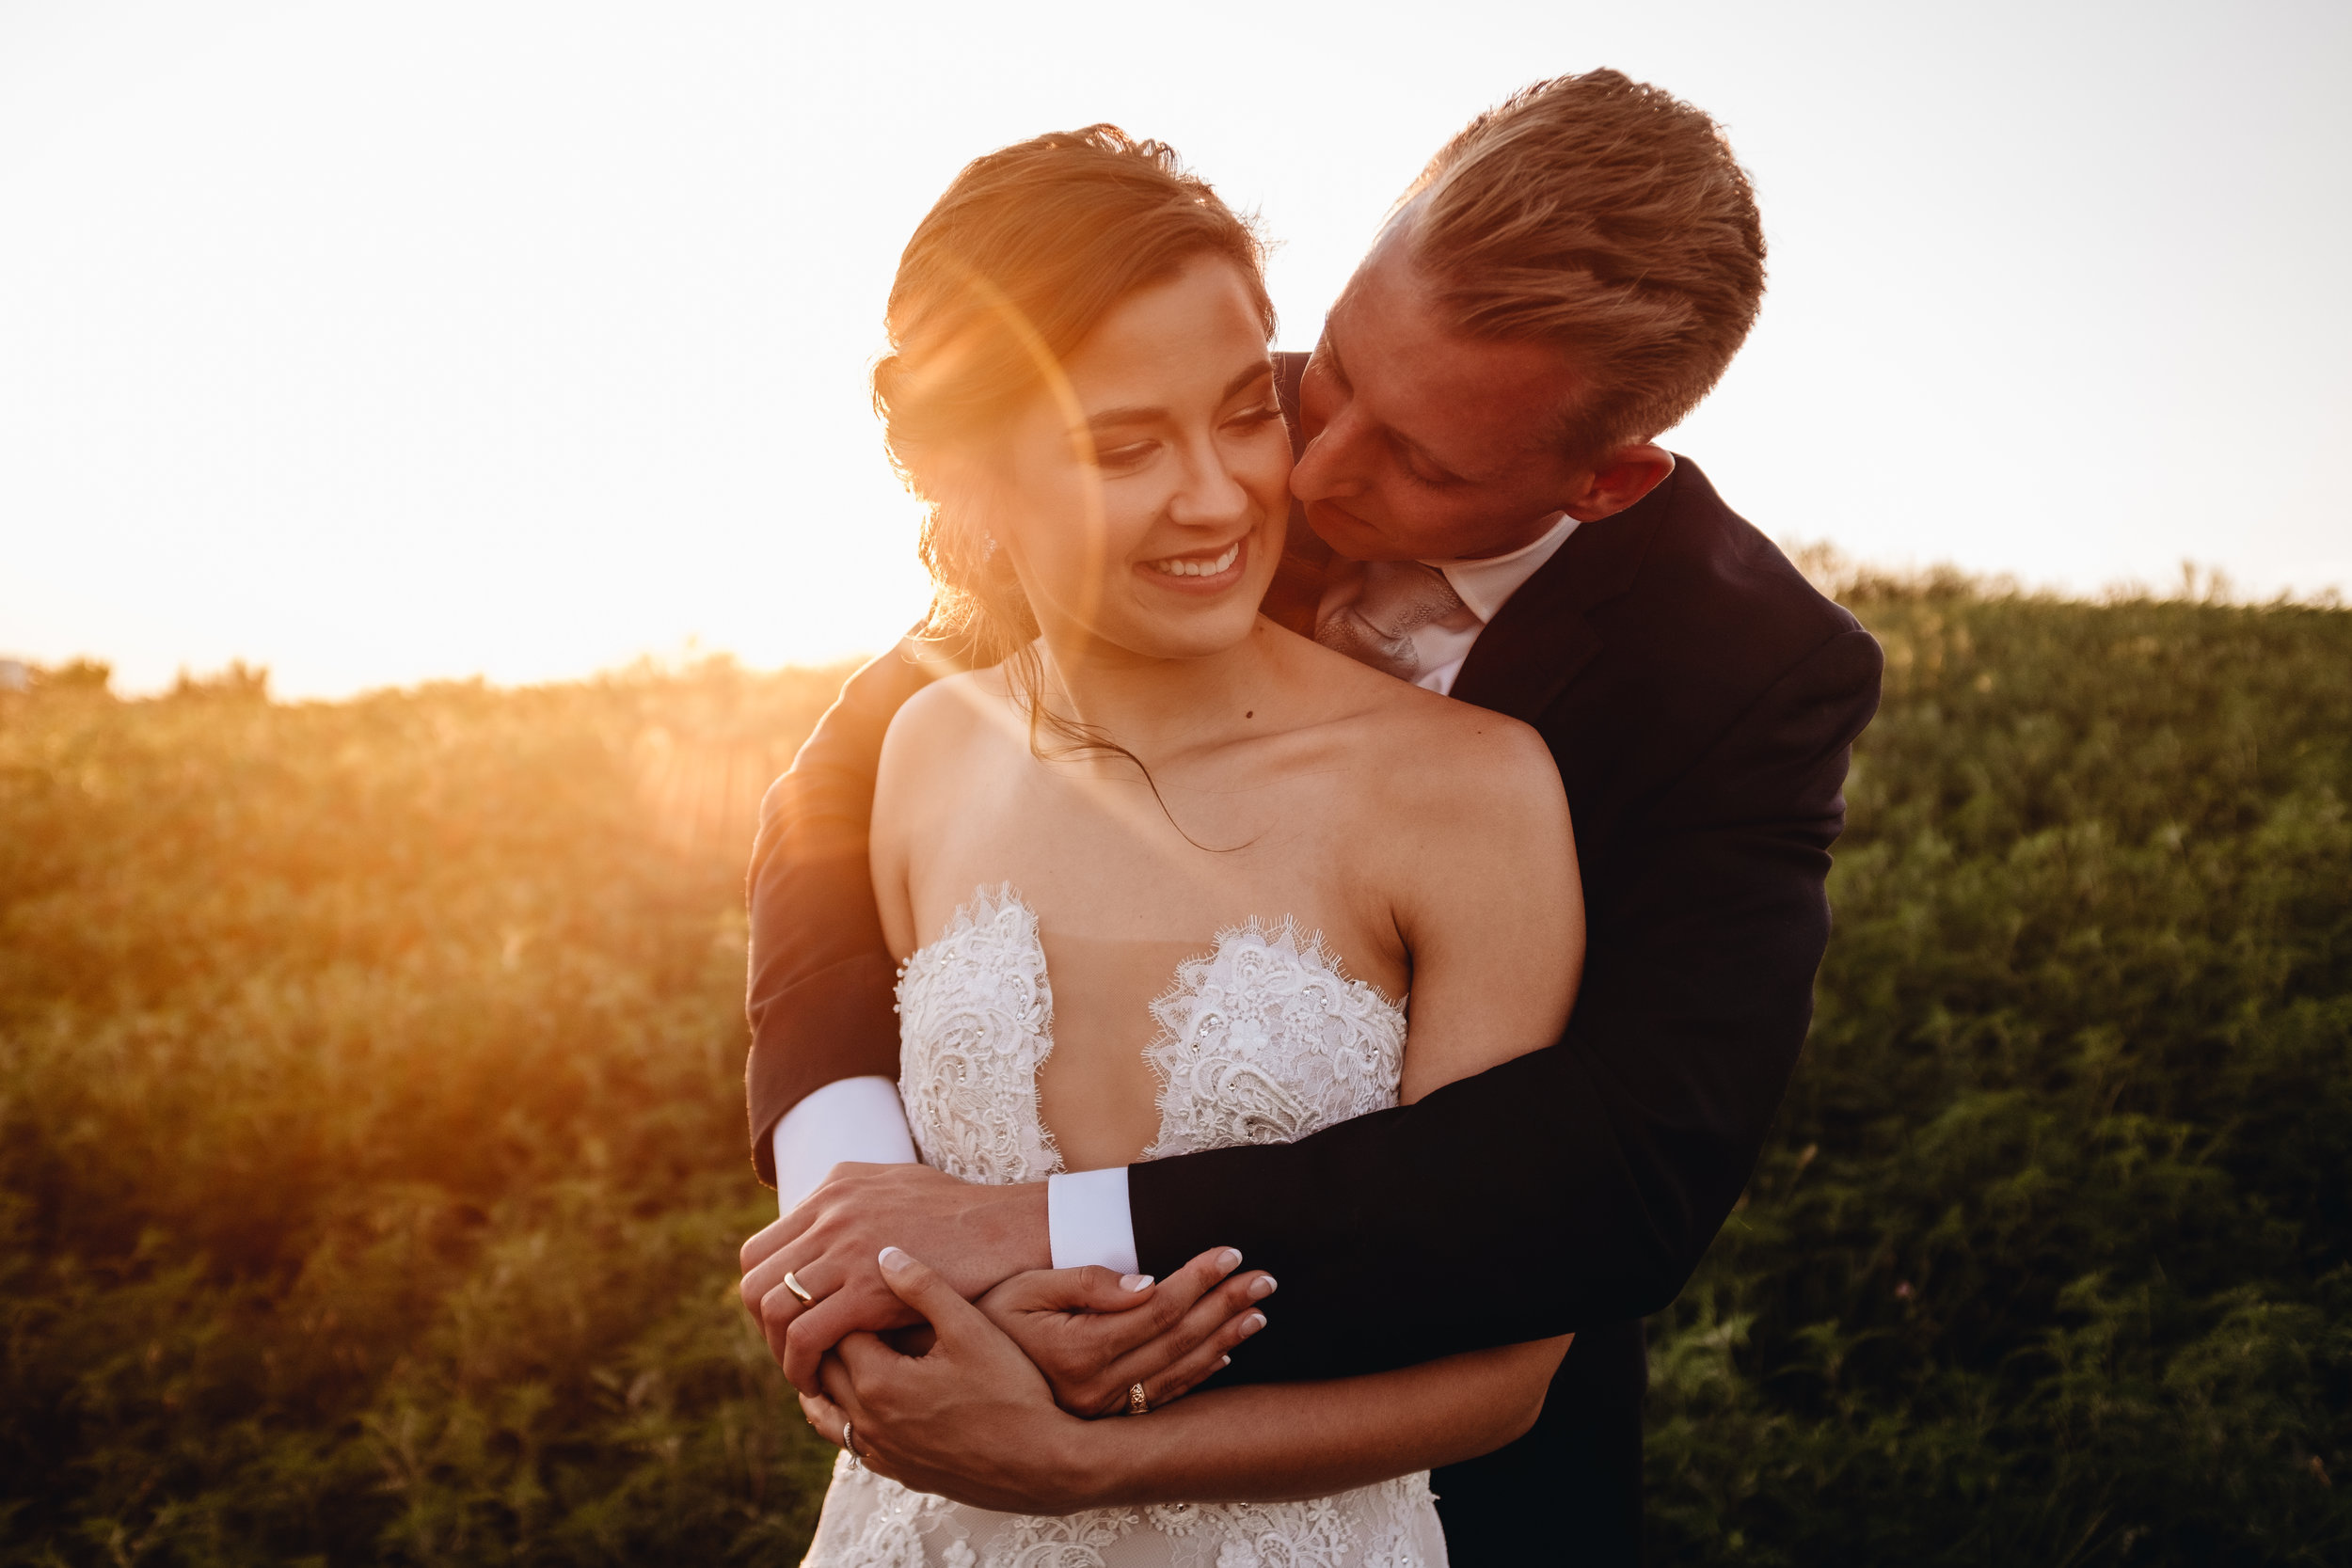 bride_groom_couple_sunset_happy_destination_wedding.jpg